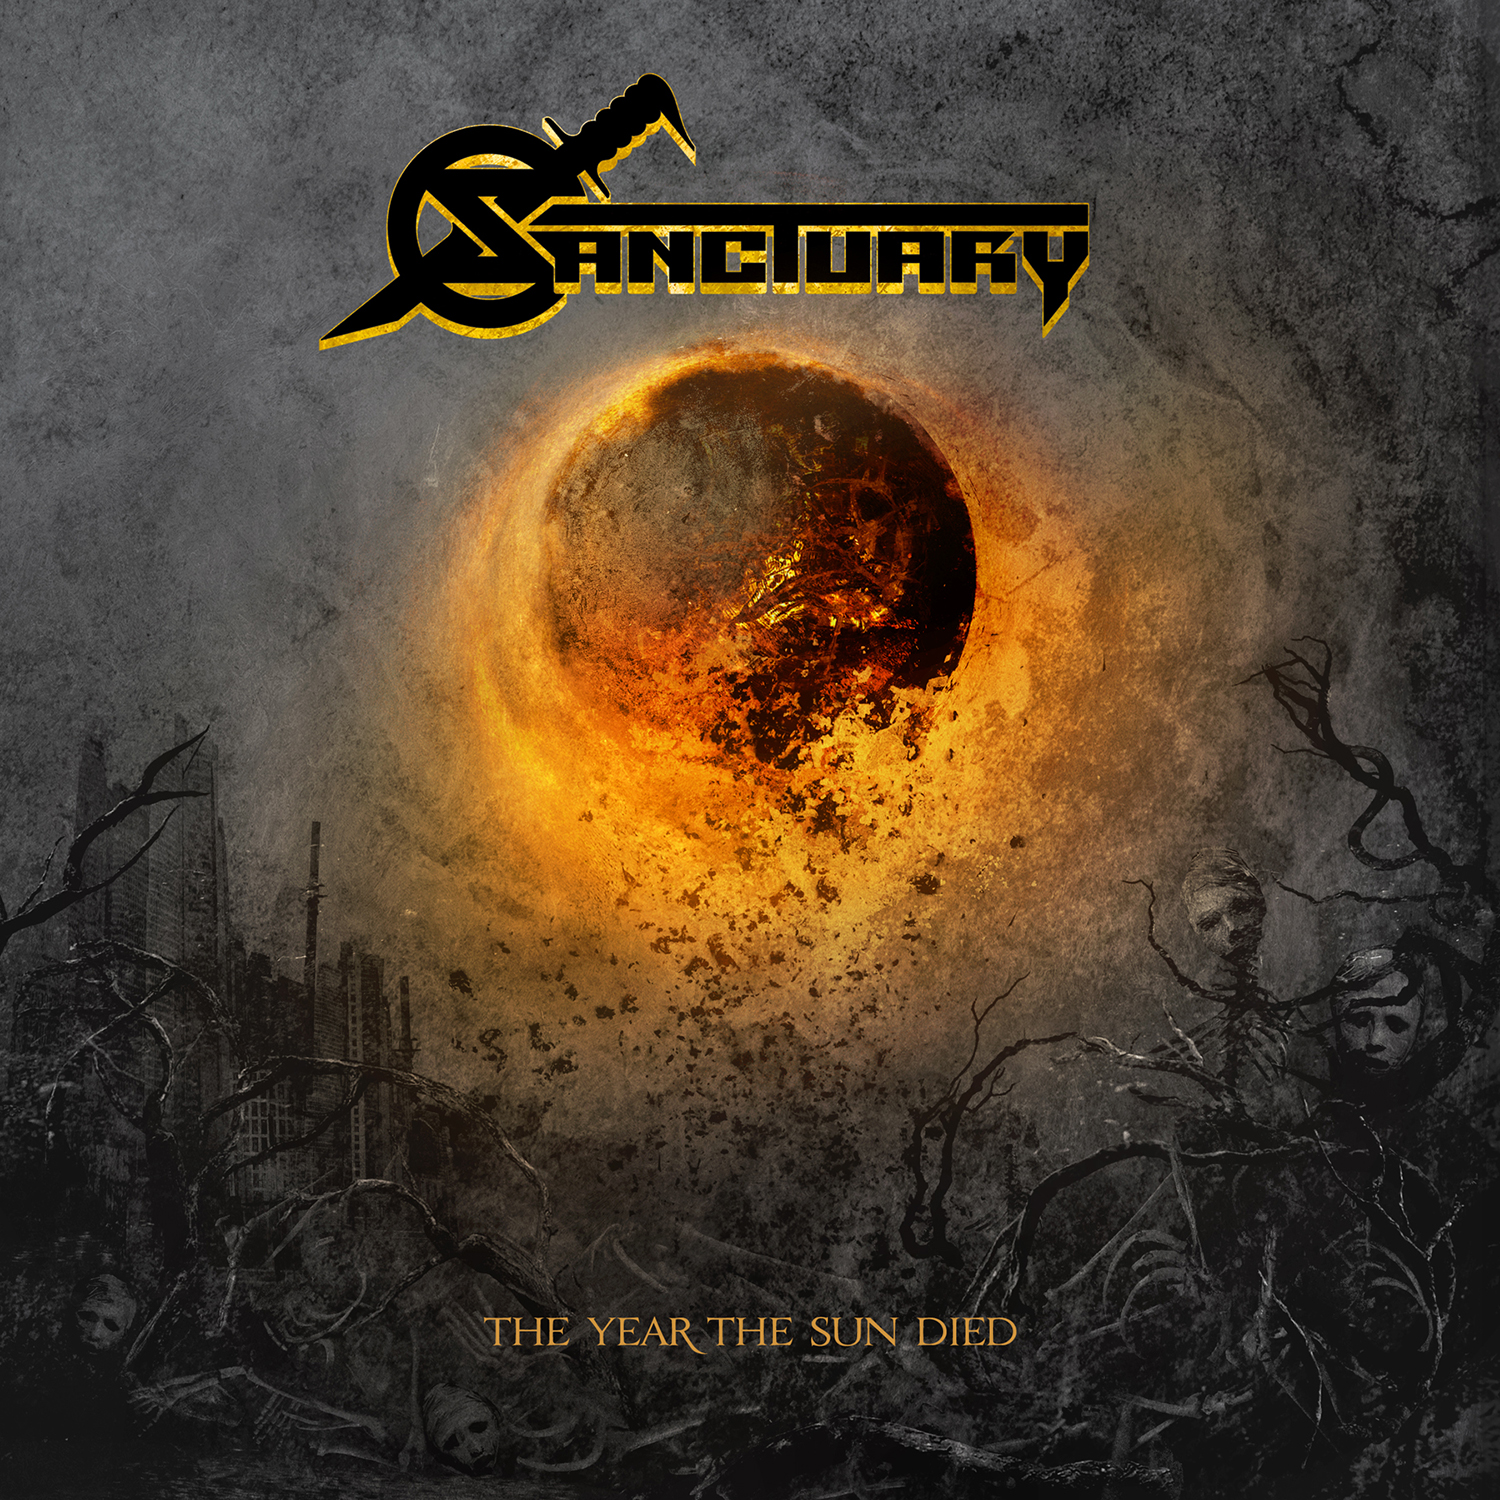 Sanctuary – The Year the Sun Died Review